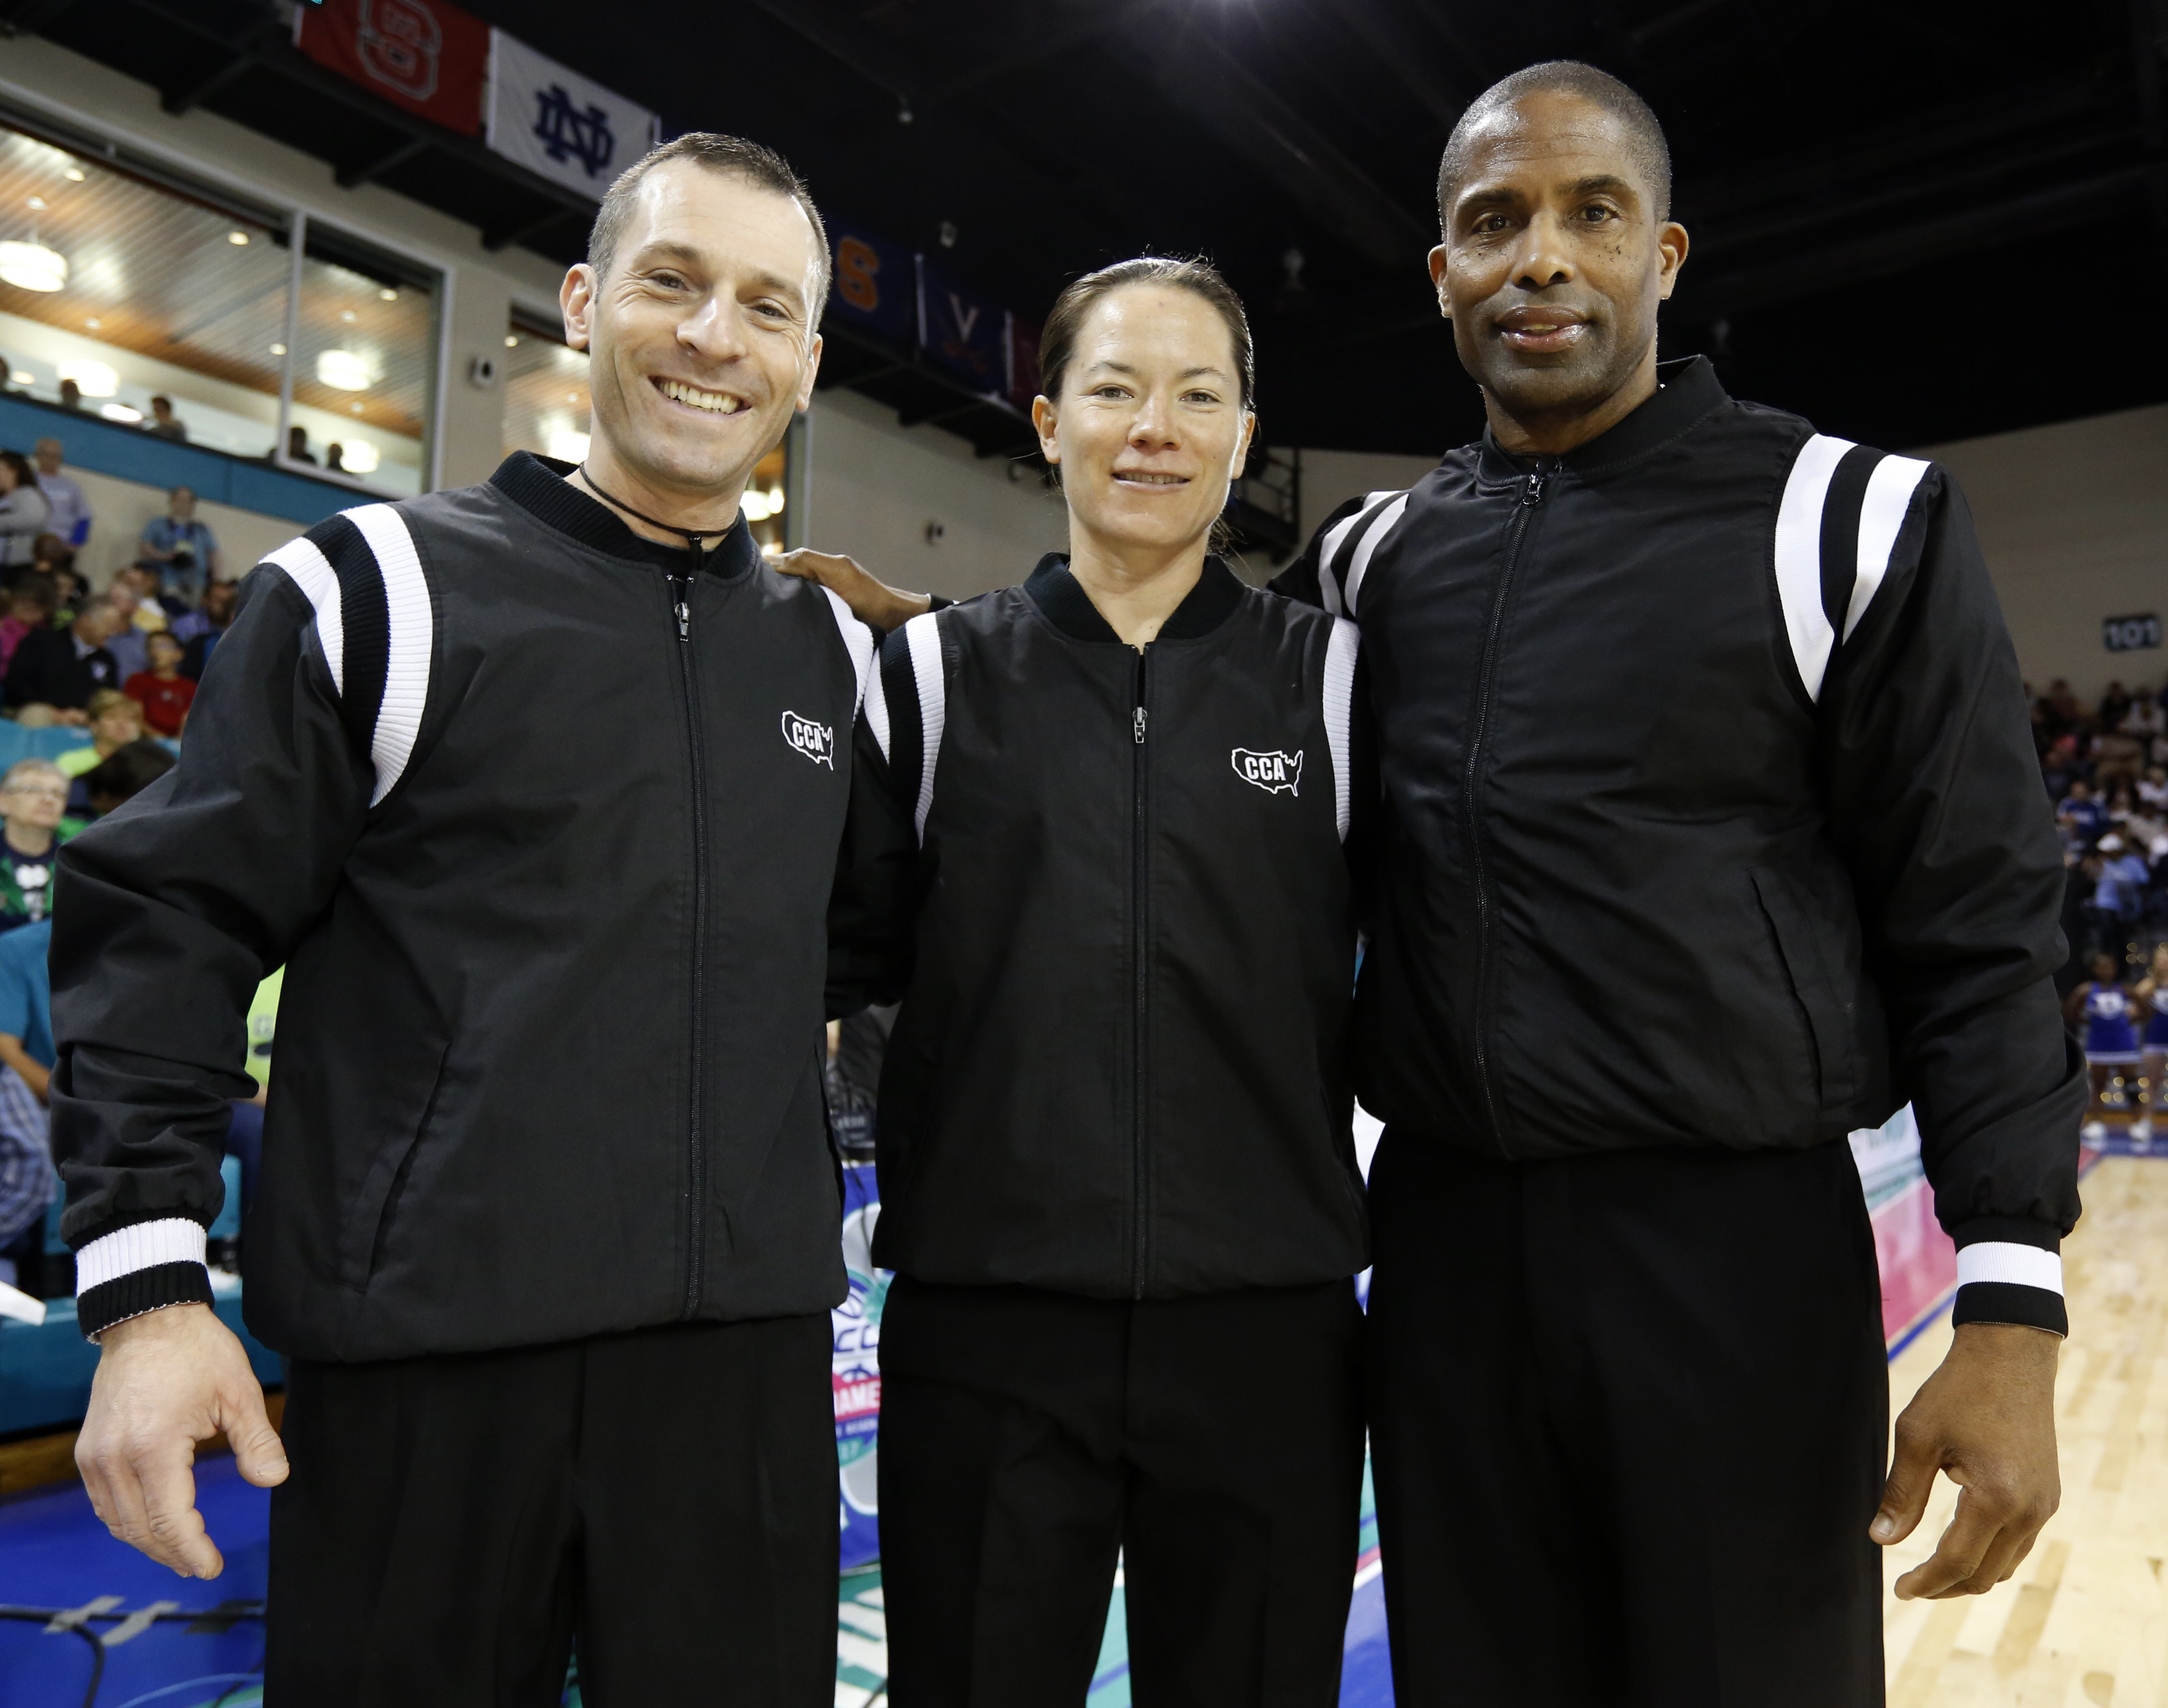 In this Sunday, March 5, 2017, photo, officials Joe Vaszily, from left, Maj Forsberg and Eric Brewton pose before the start of the women's basketball game between Duke and Notre Dame at the NCAA college championship basketball game in the Atlantic Coast C